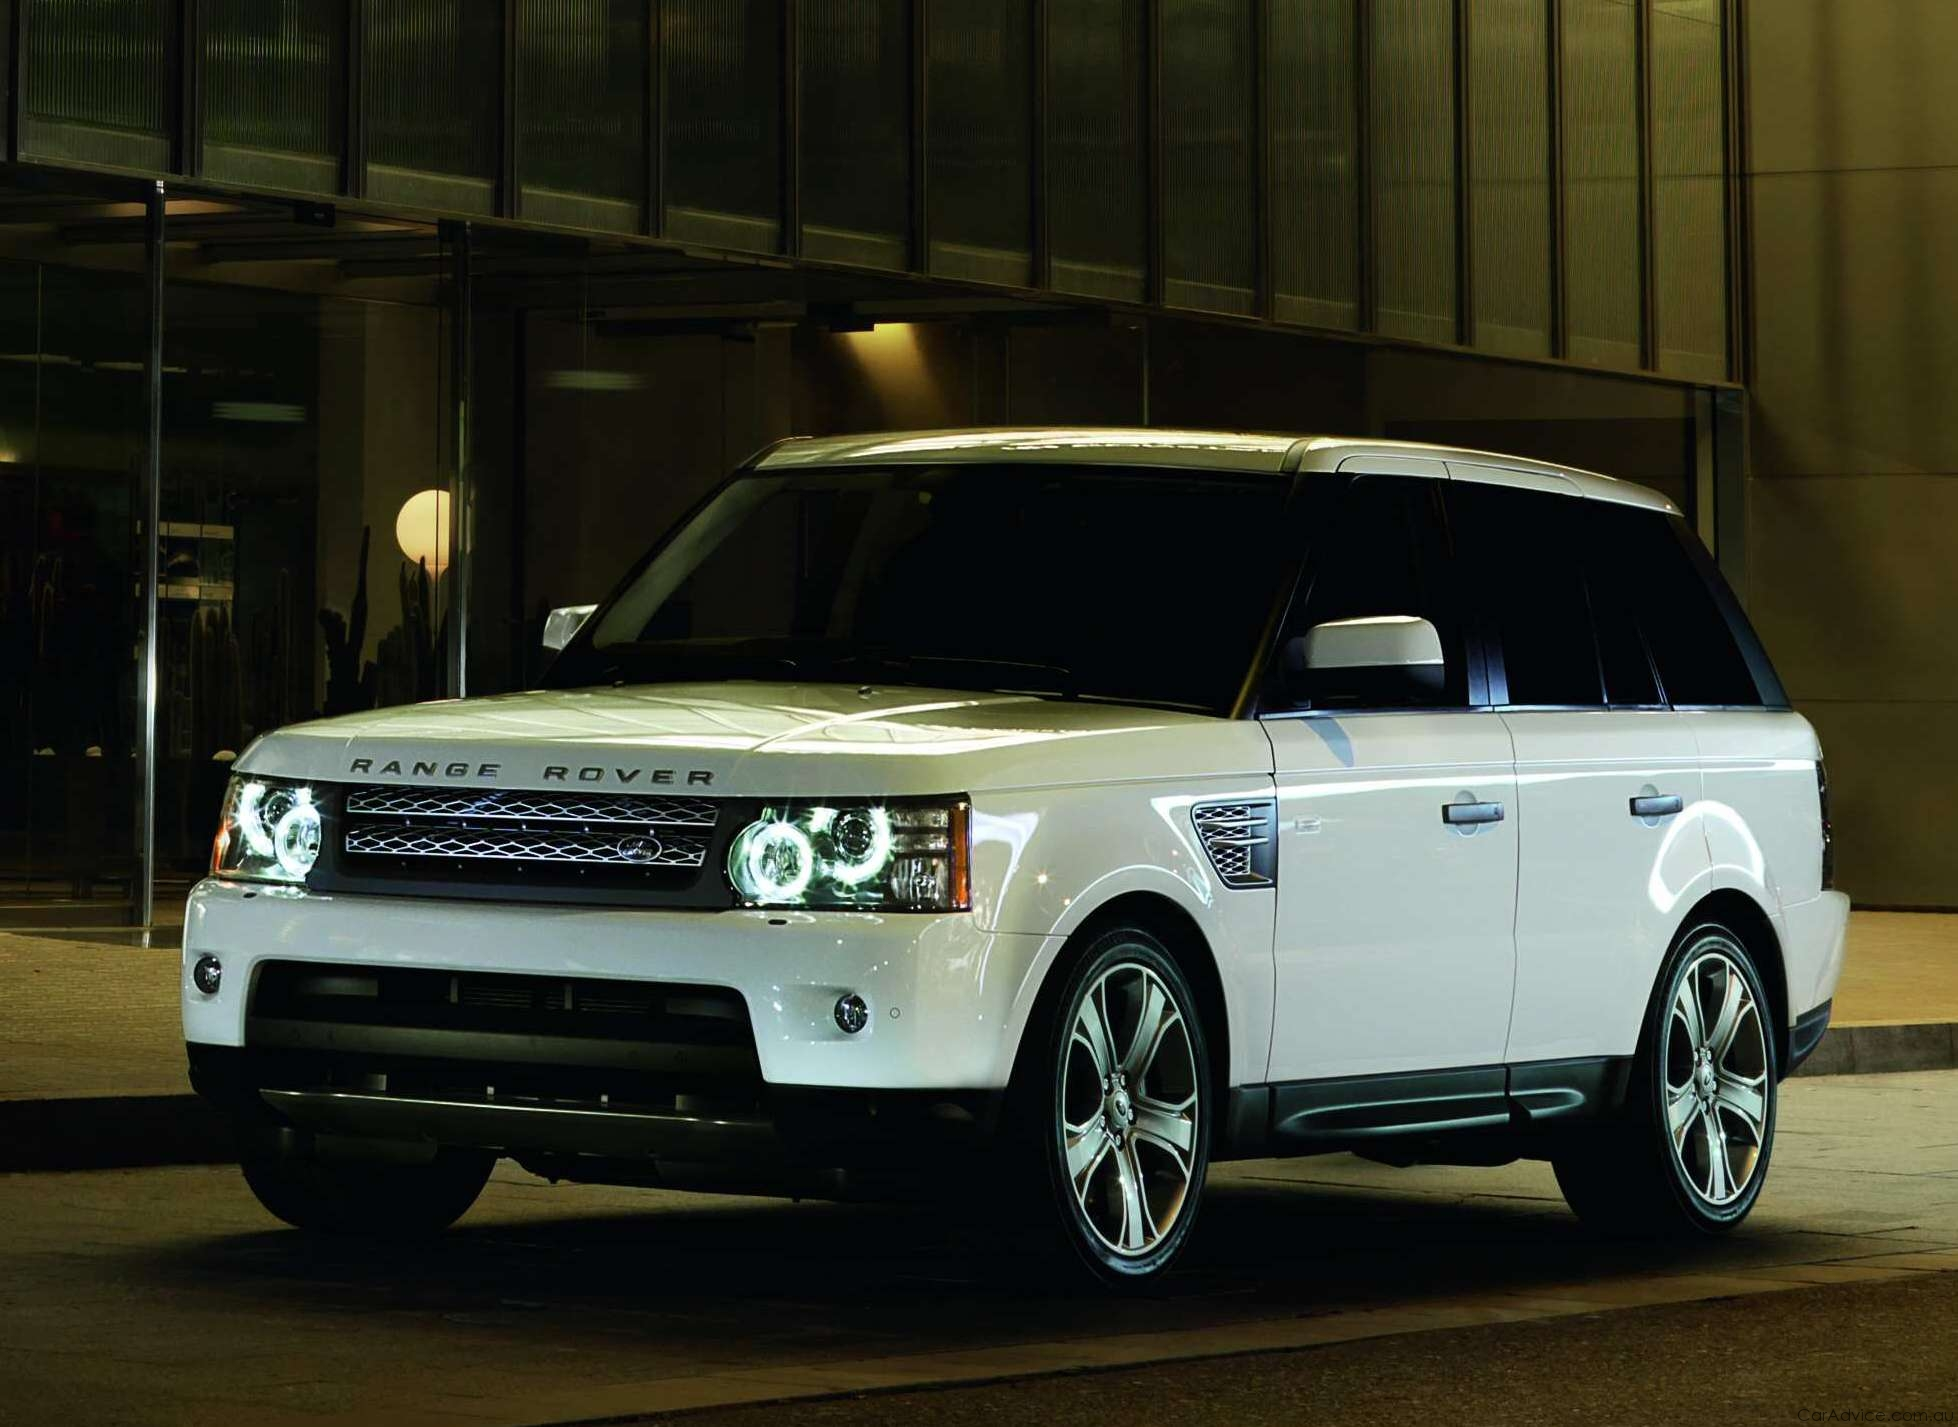 Range Rover Sport Parts Outlook RRS Accessories & Spares Wallpapers HD